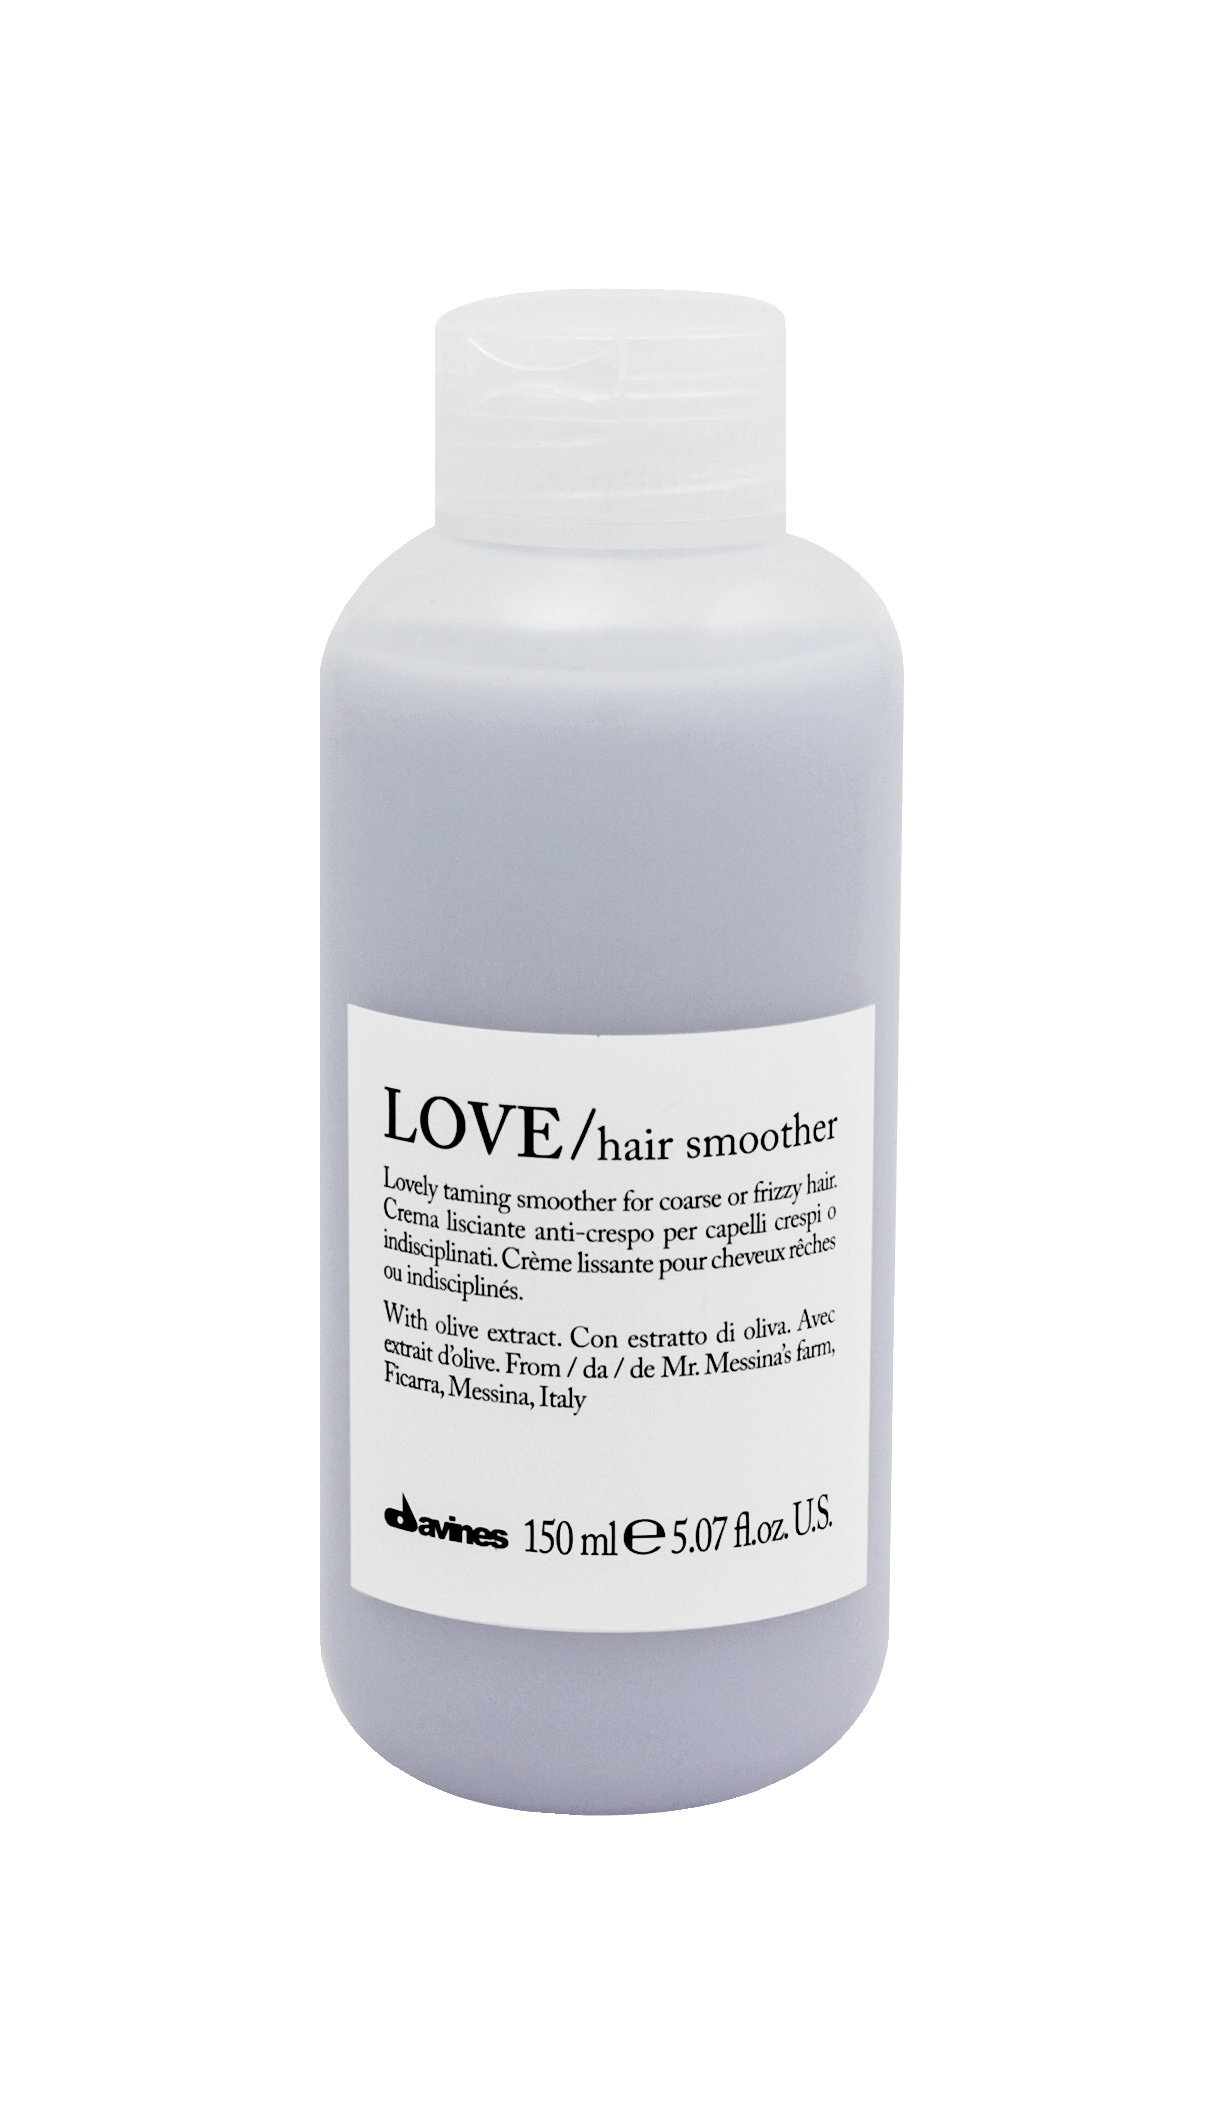 ech love smoothing hair smoother.jpg